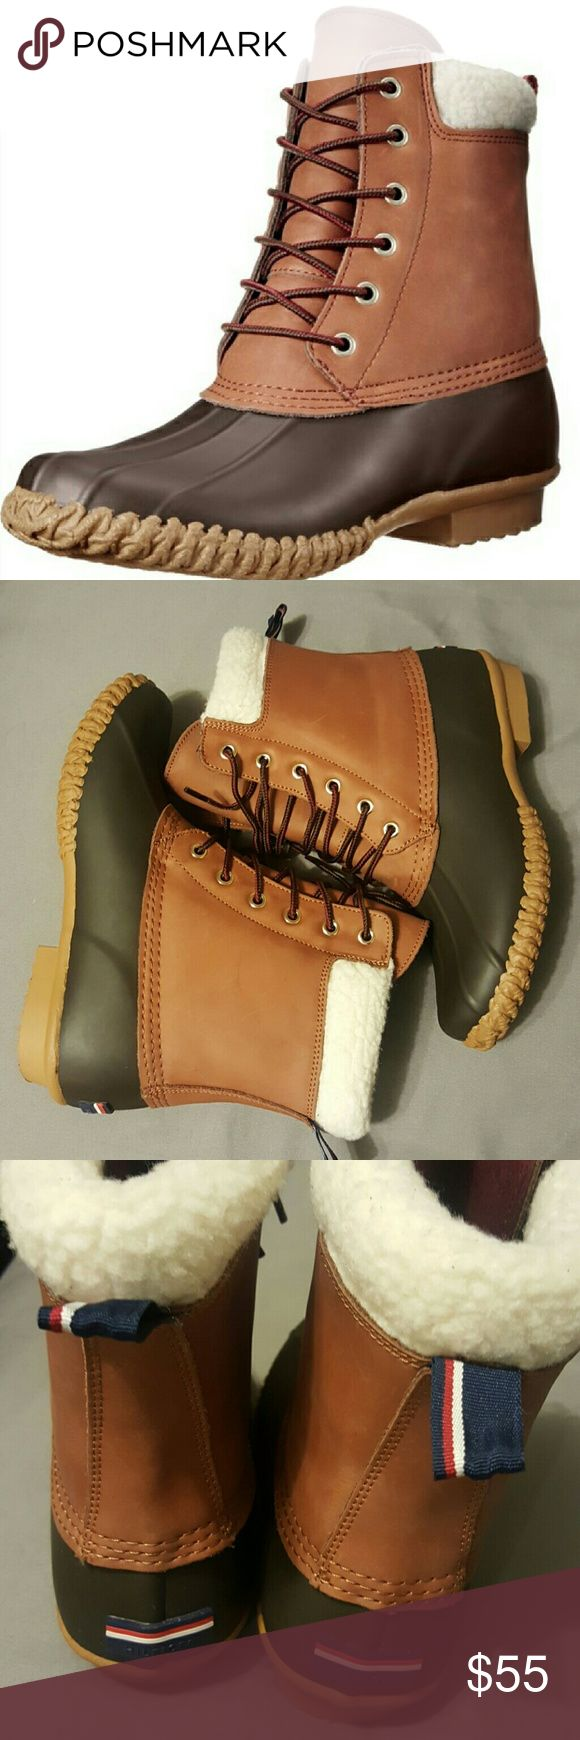 Tommy Hilfiger boots Tommy Hilfiger Faux-Fur Duck Booties size 8 never used. Tommy Hilfiger Shoes Winter & Rain Boots